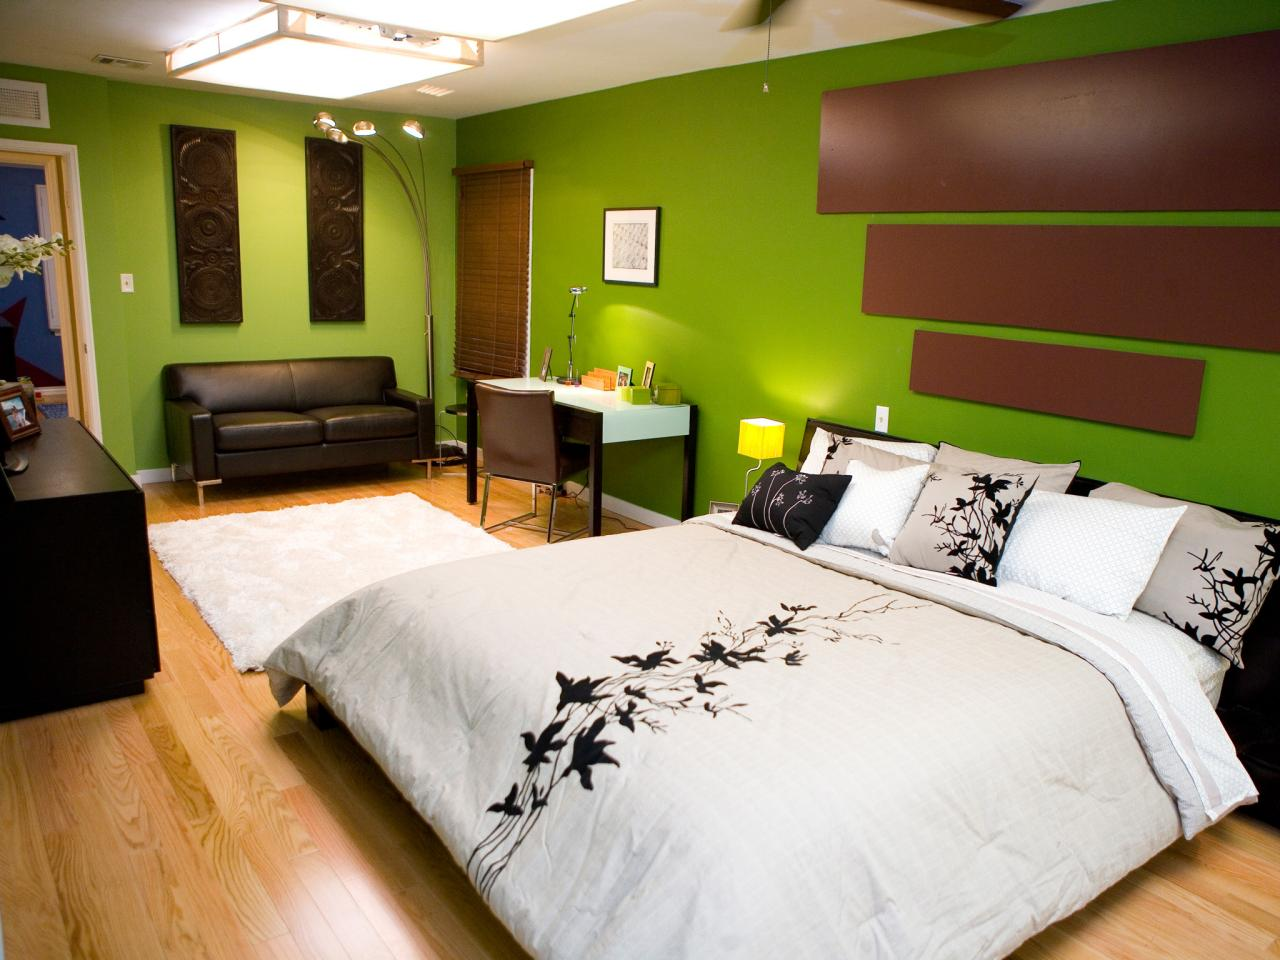 Green Bedrooms: Pictures, Options & Ideas | HGTV